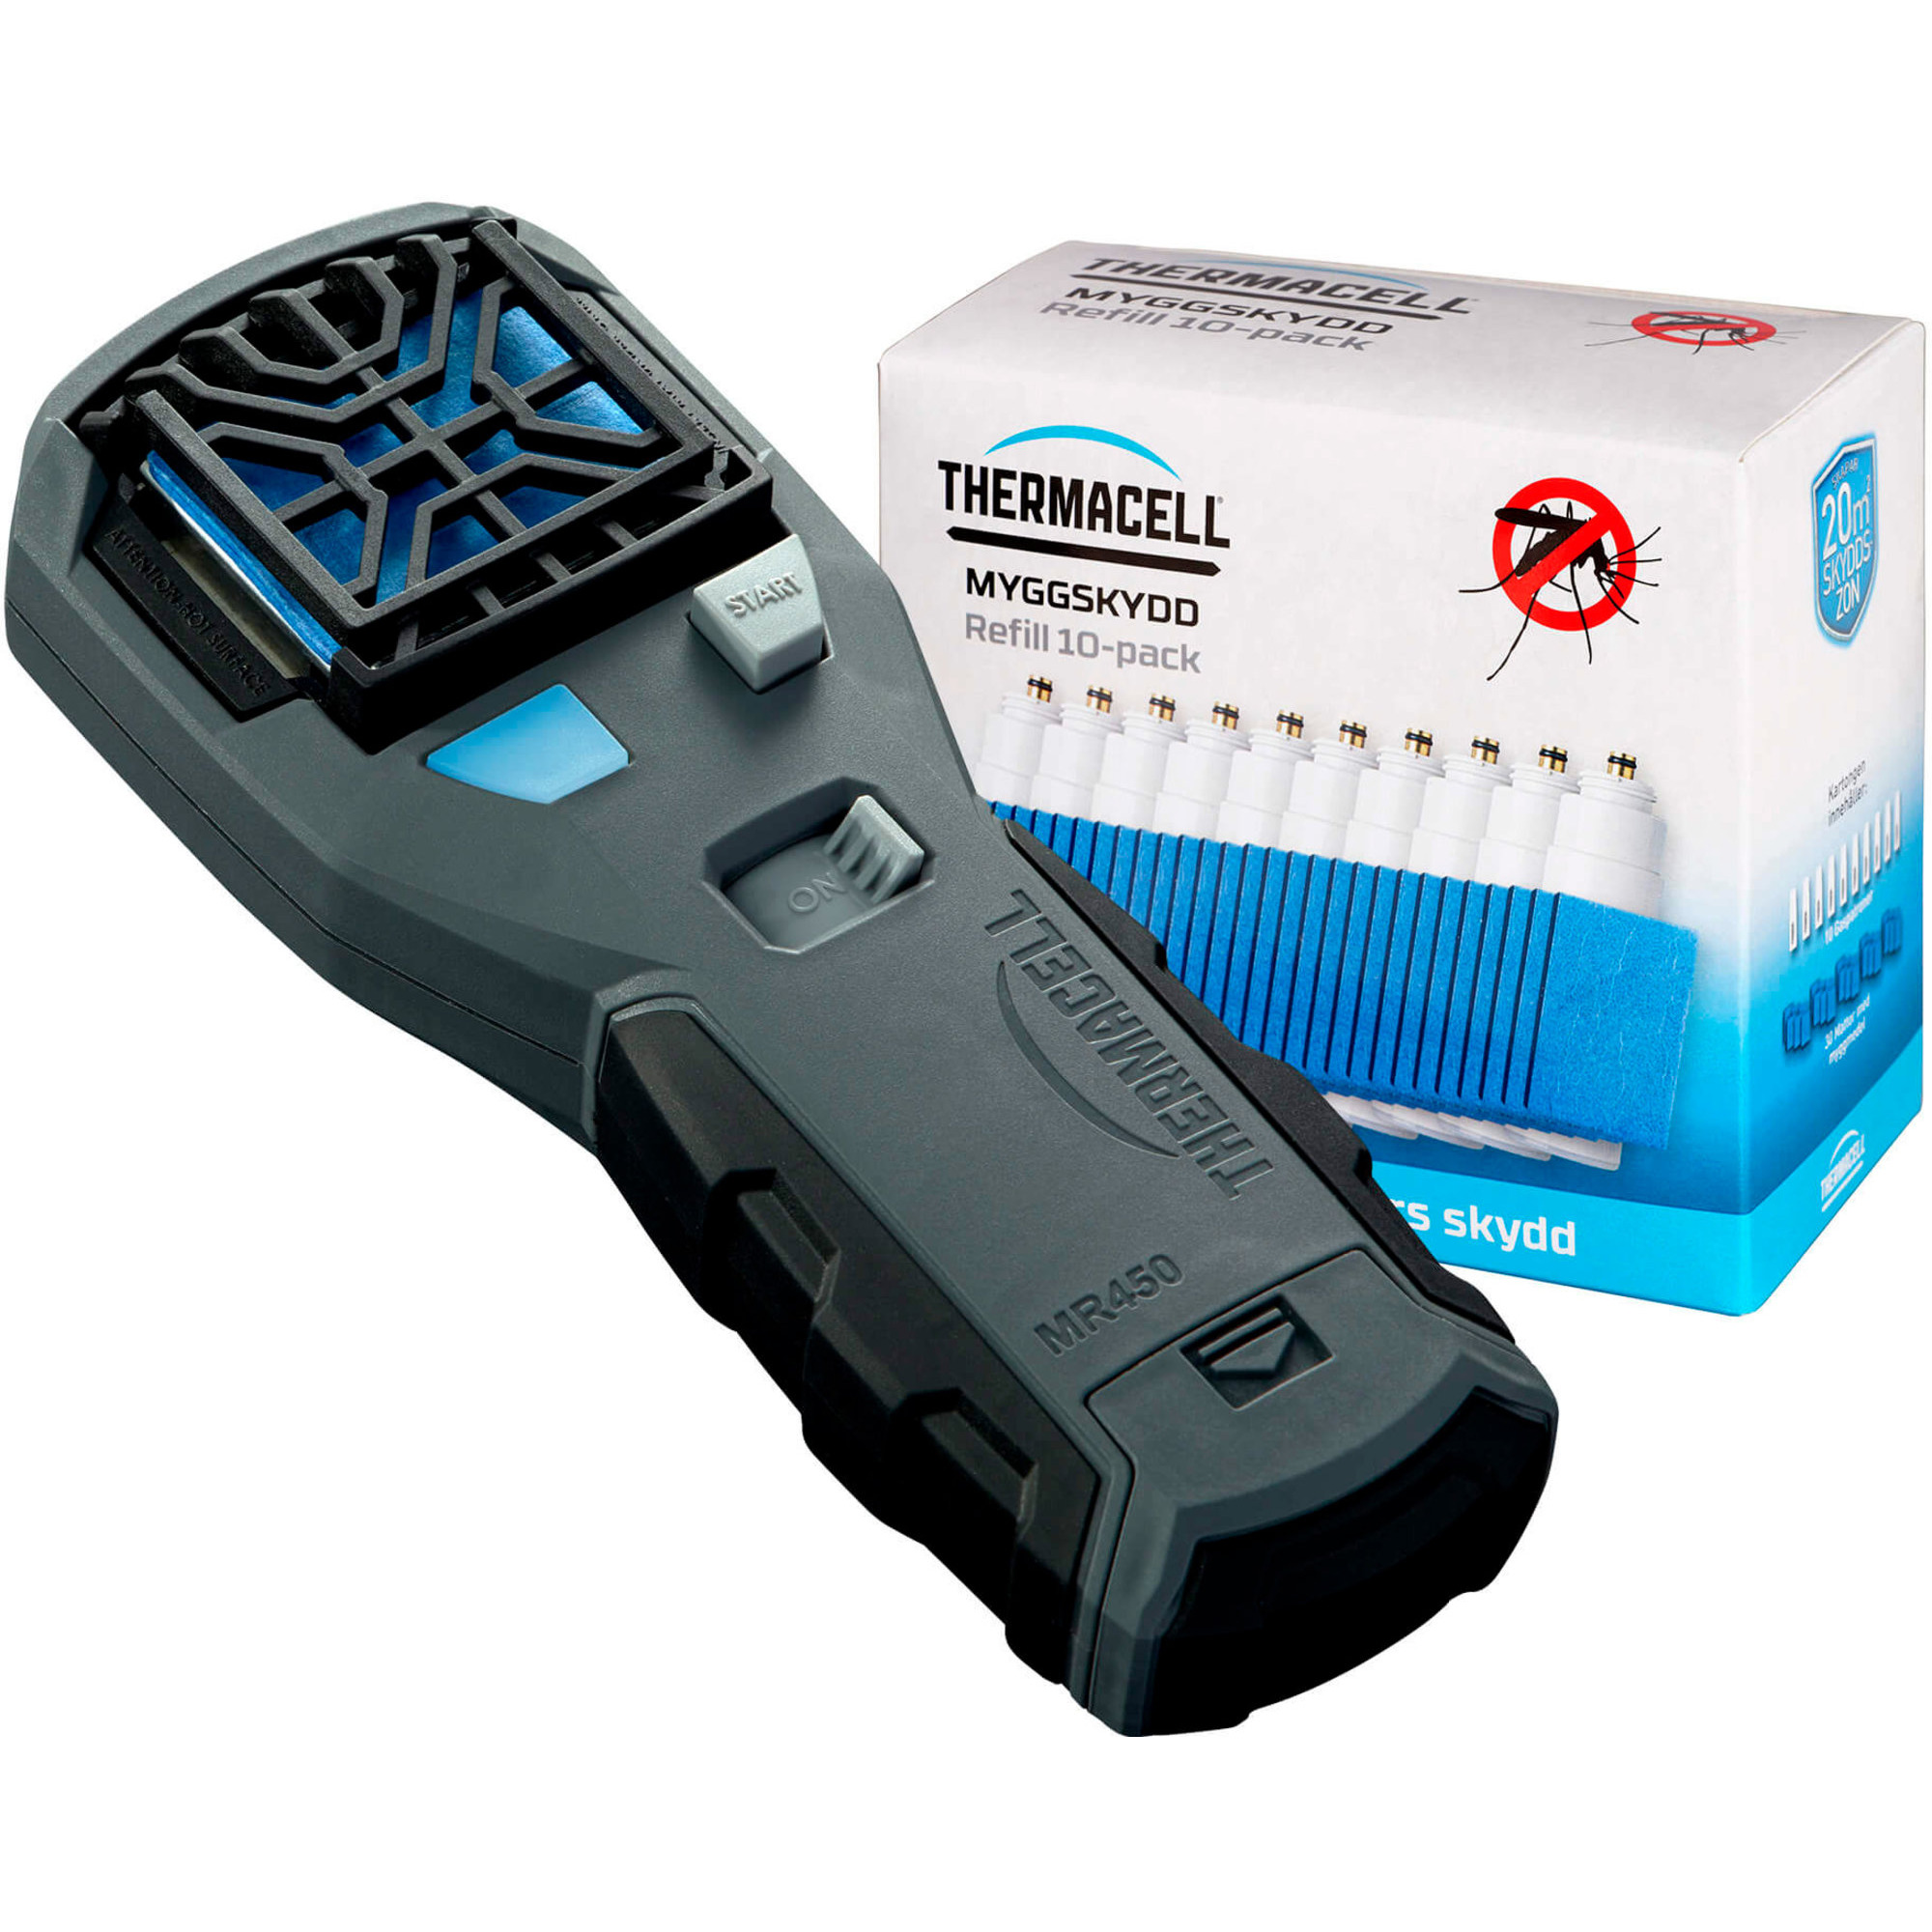 Thermacell MR450 Myggskydd + Refill-kit 10-pack